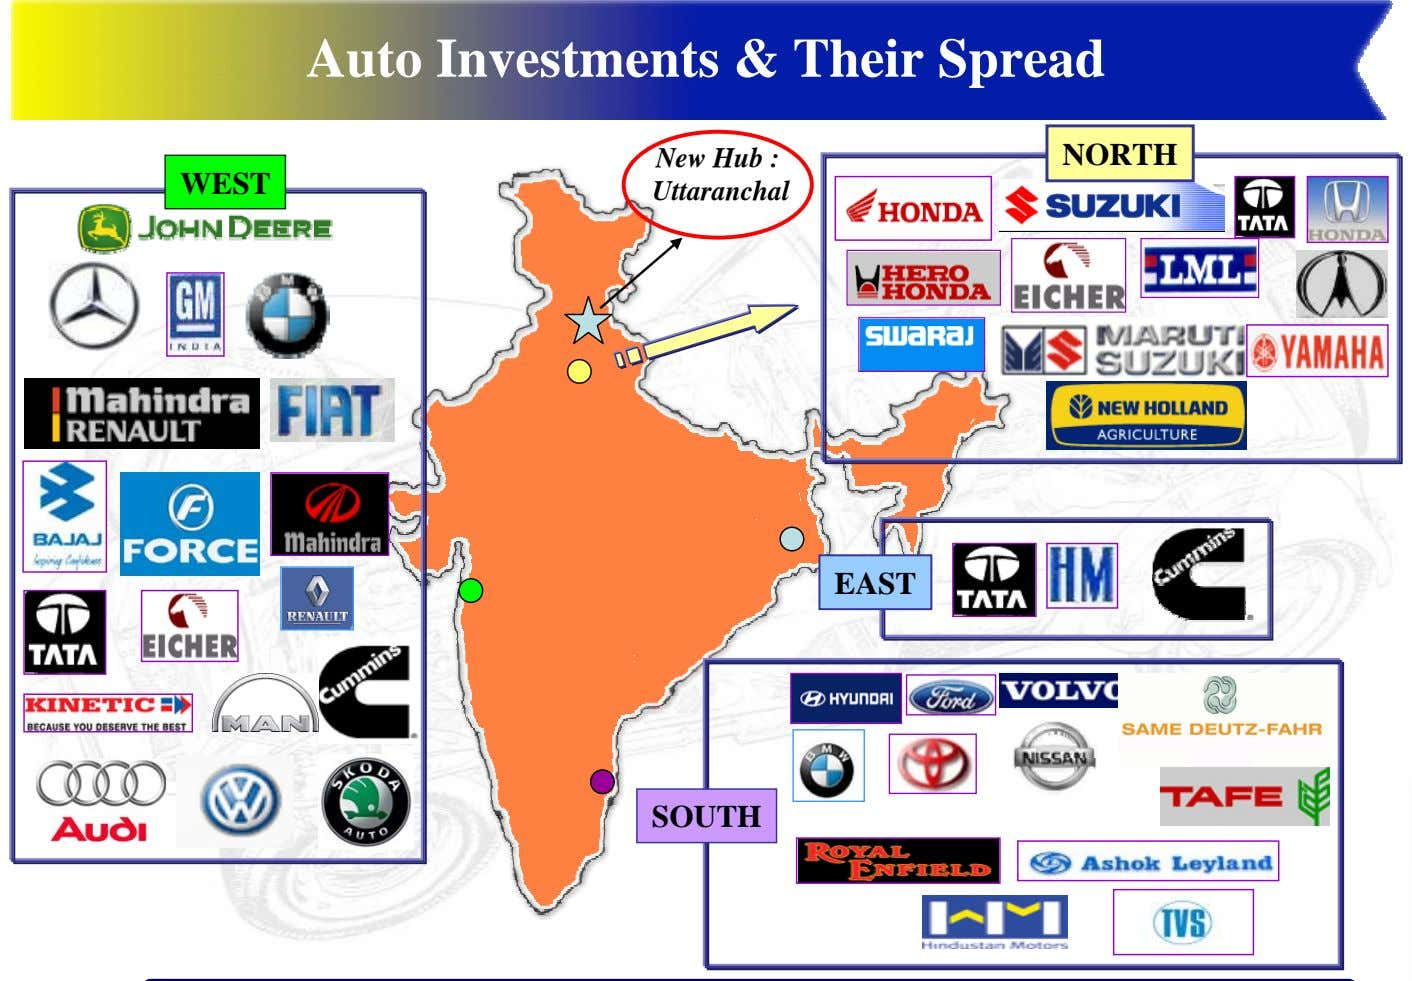 Auto Investments & Their Spread New Hub : NORTH WEST Uttaranchal EAST SOUTH